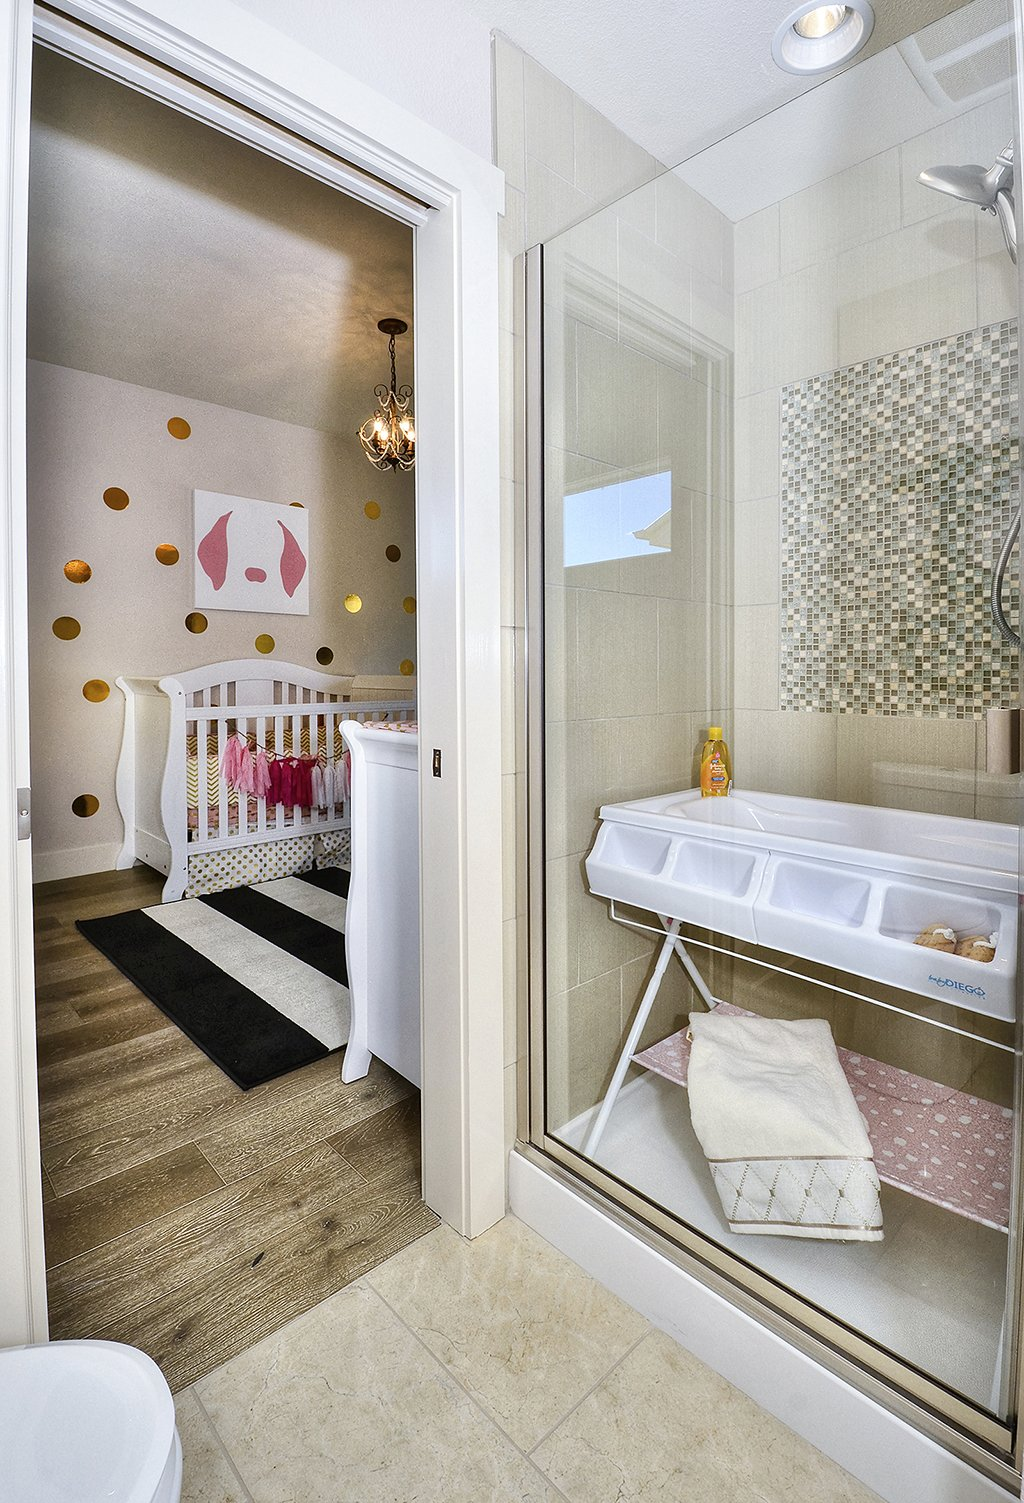 Picture of baby's room in 1602 Gold Hill Mesa Dr Colorado Springs CO